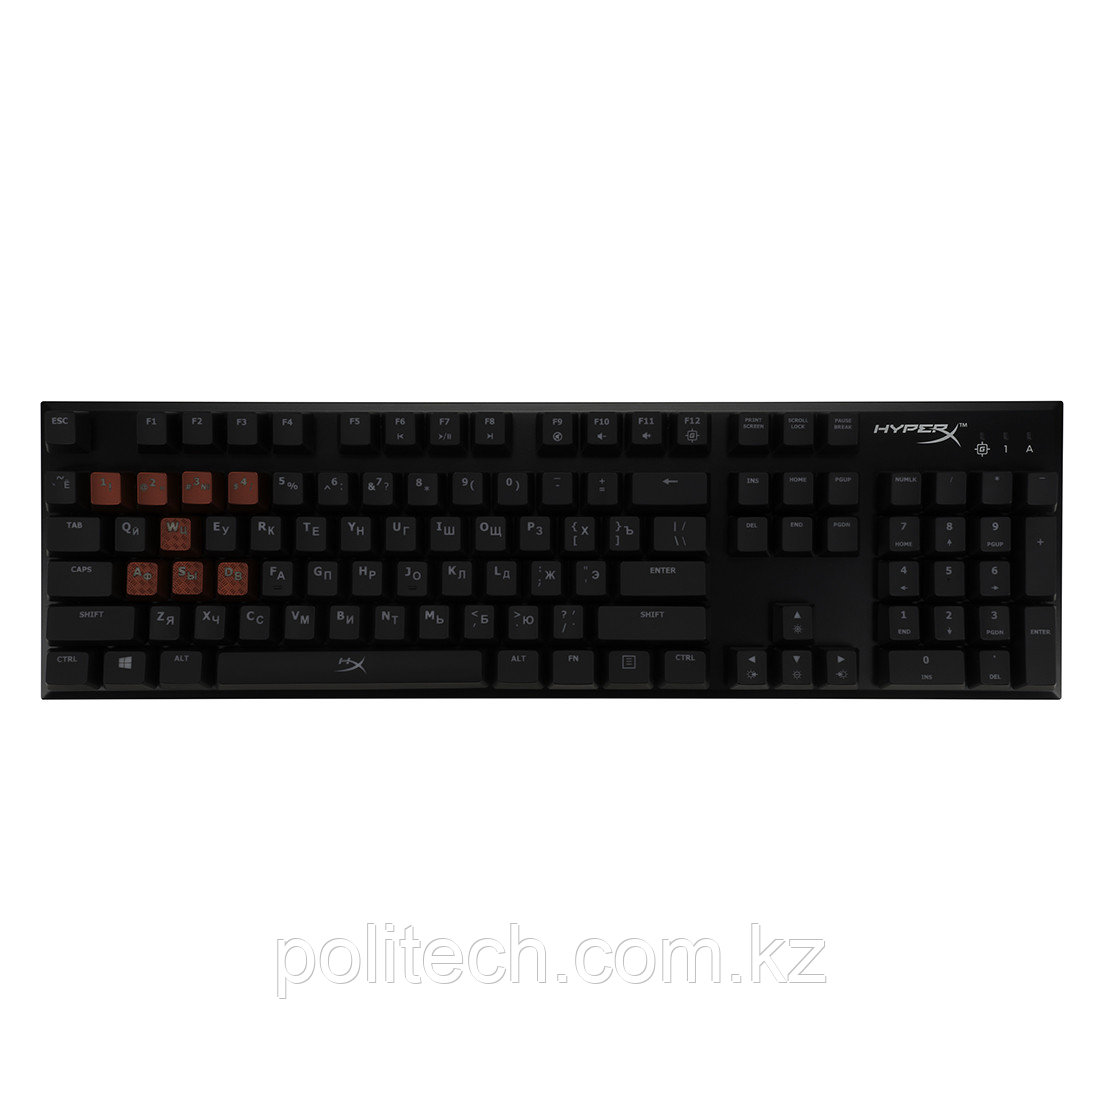 Клавиатура HyperX Alloy FPS Mechanical Gaming MX Brown HX-KB1BR1-RU/A5